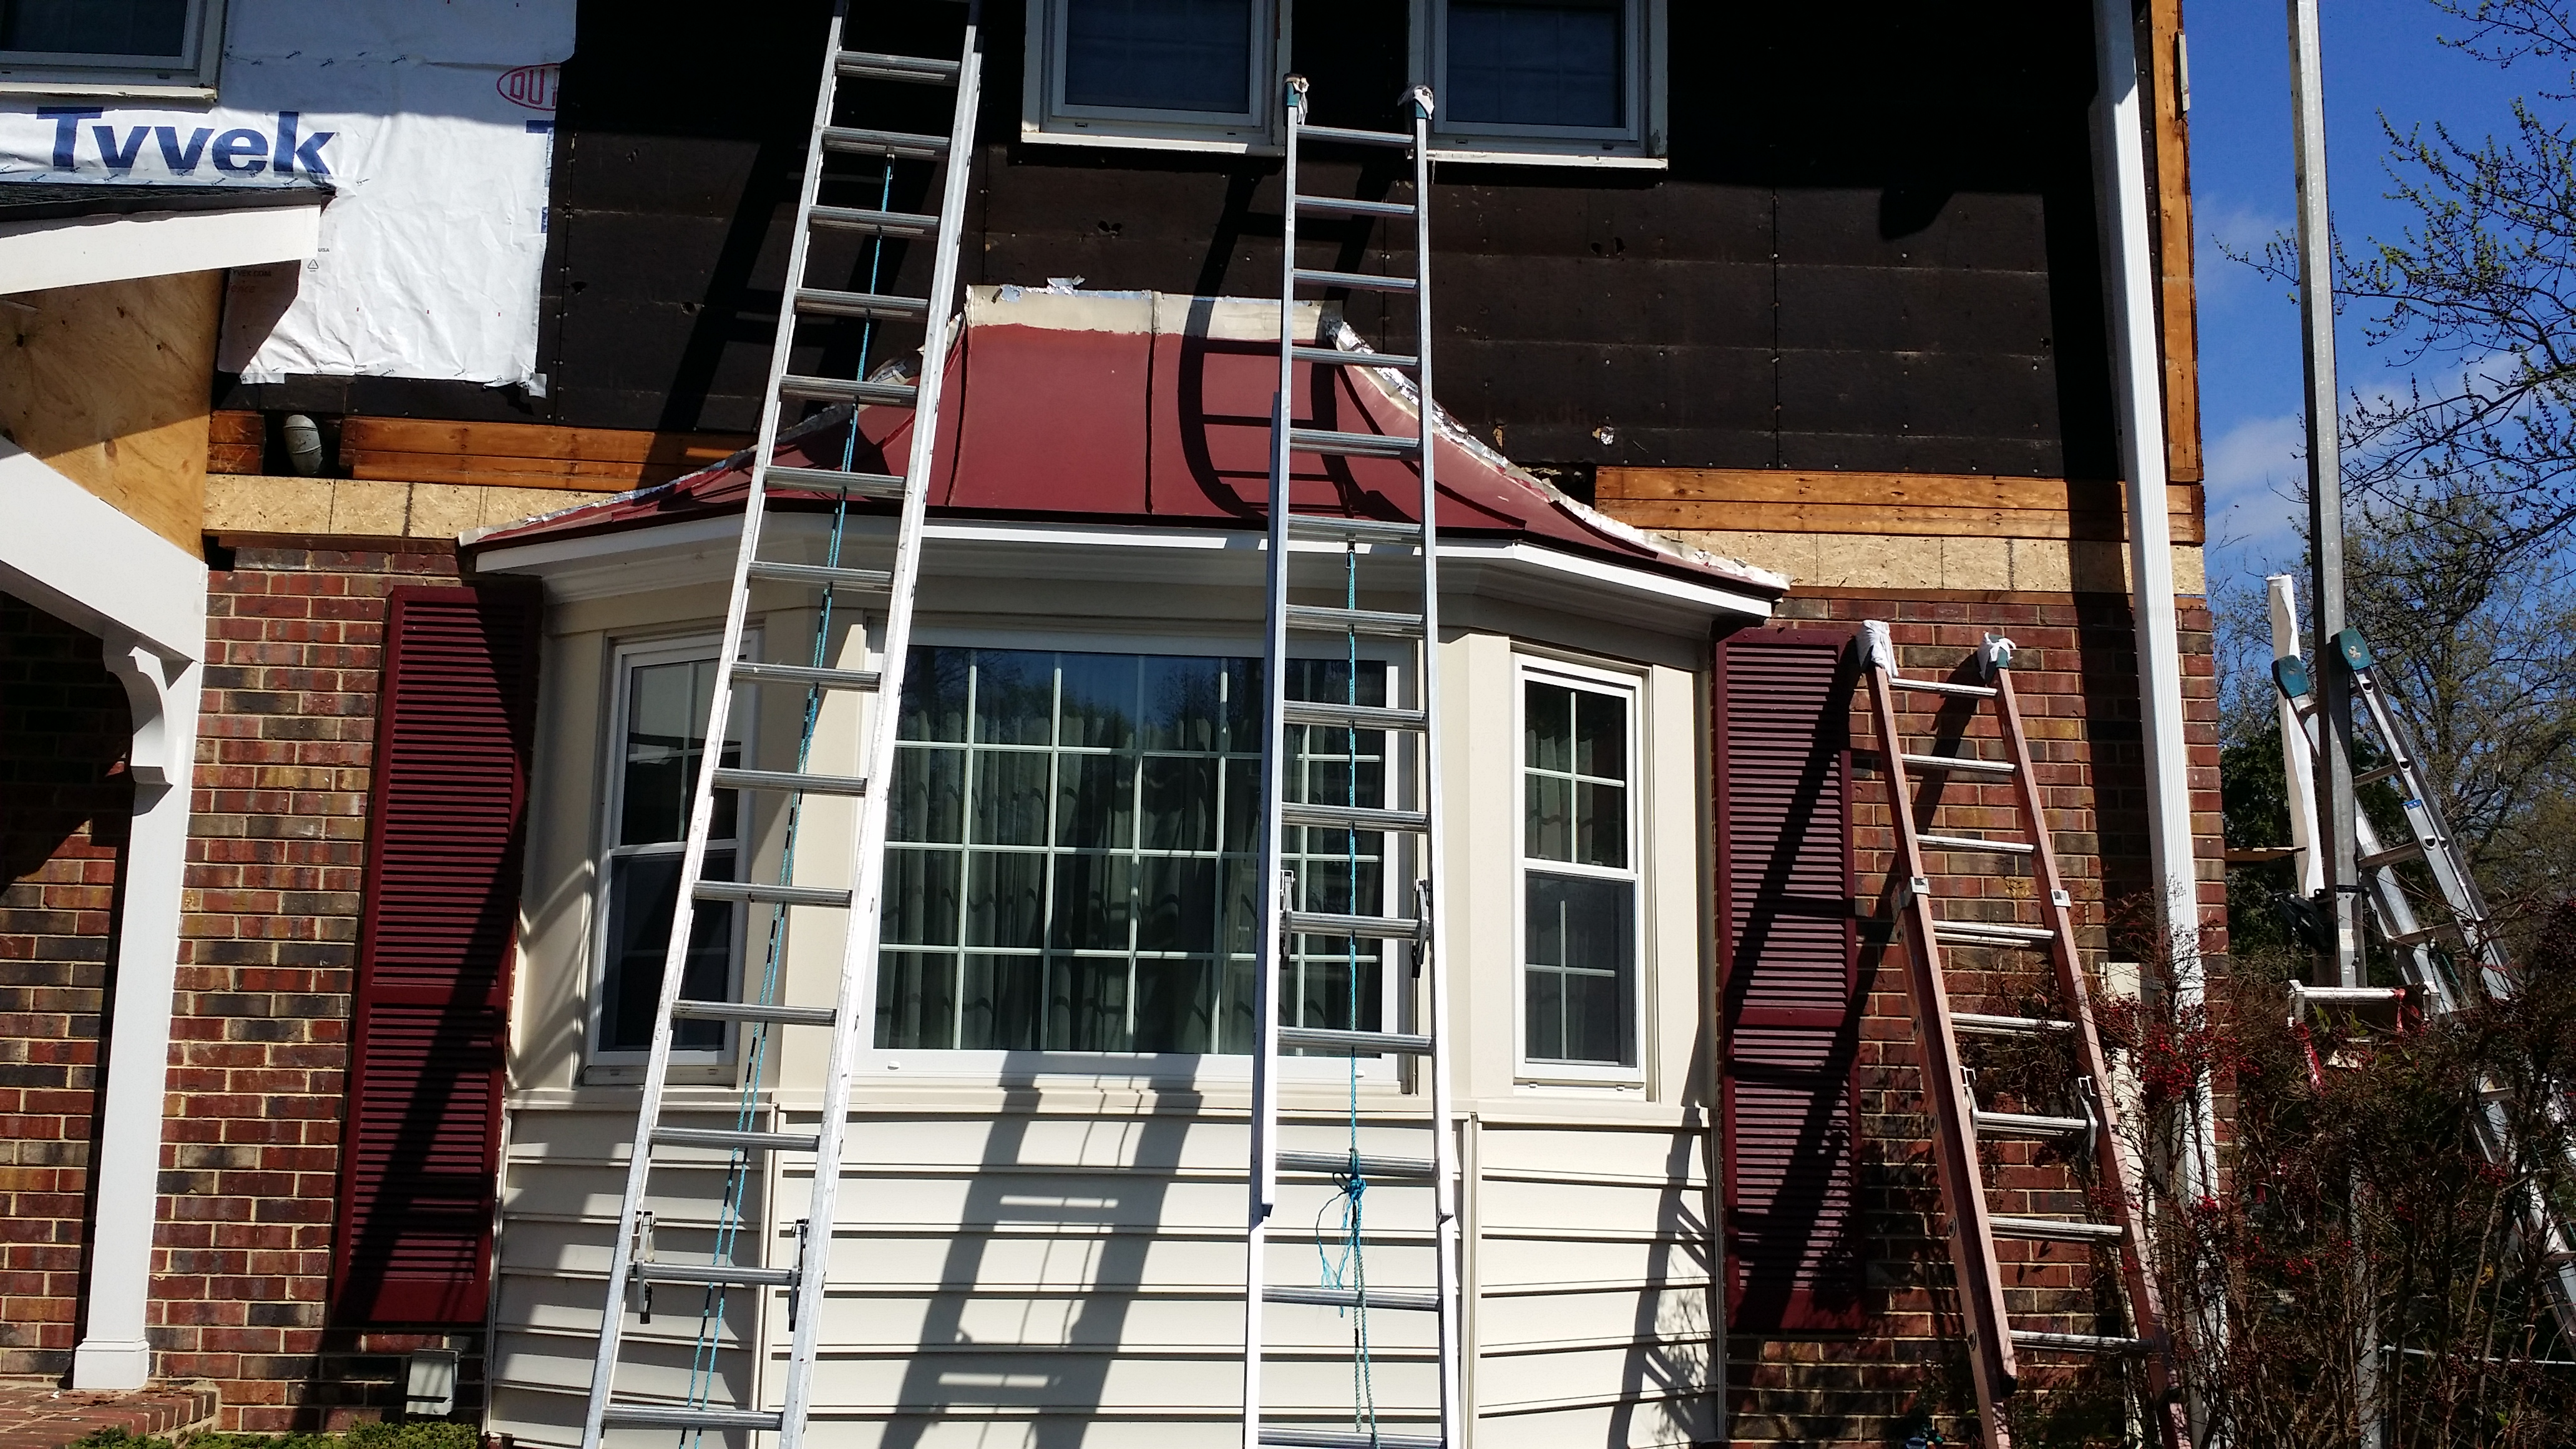 KCSI - Siding, Roofing, Windows & Doors, and Gutters